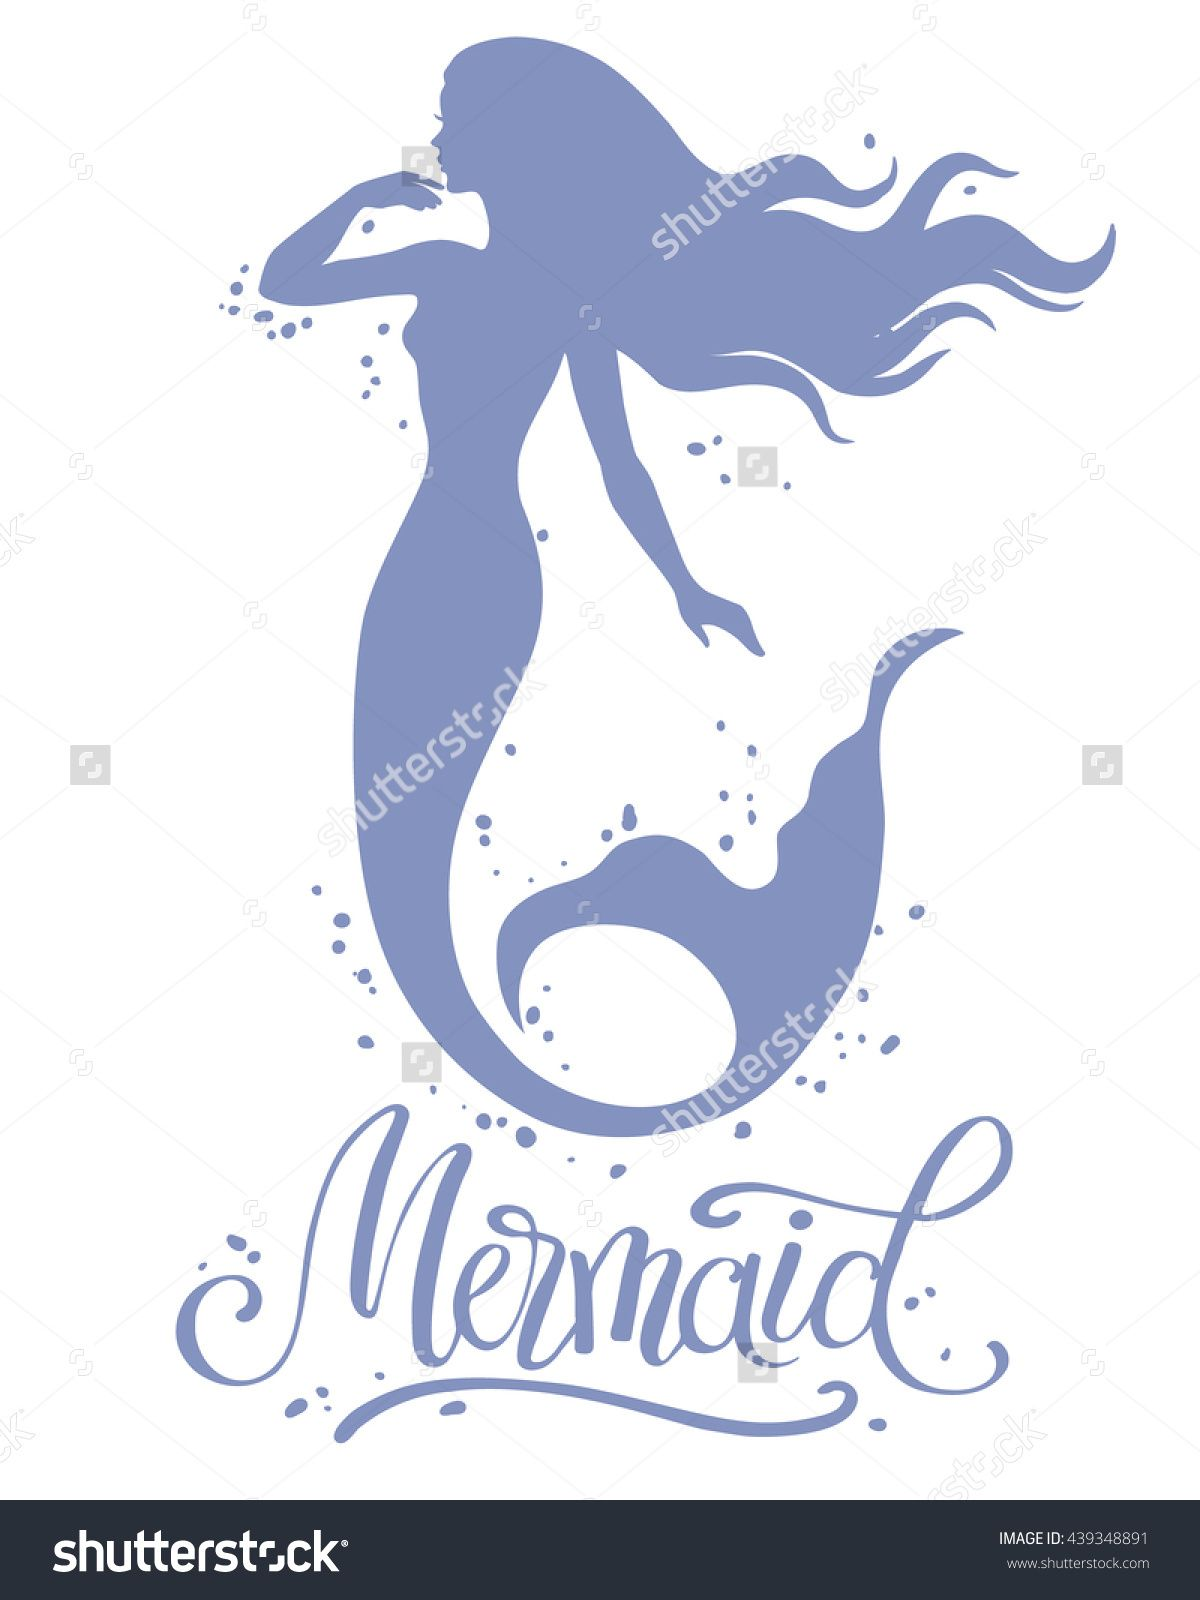 Hand painted mermaid watercolor vector silhouette stock vector - Mermaid Hand Drawn Vector Silhouette Illustration Buy This Stock Vector On Shutterstock Find Other Images